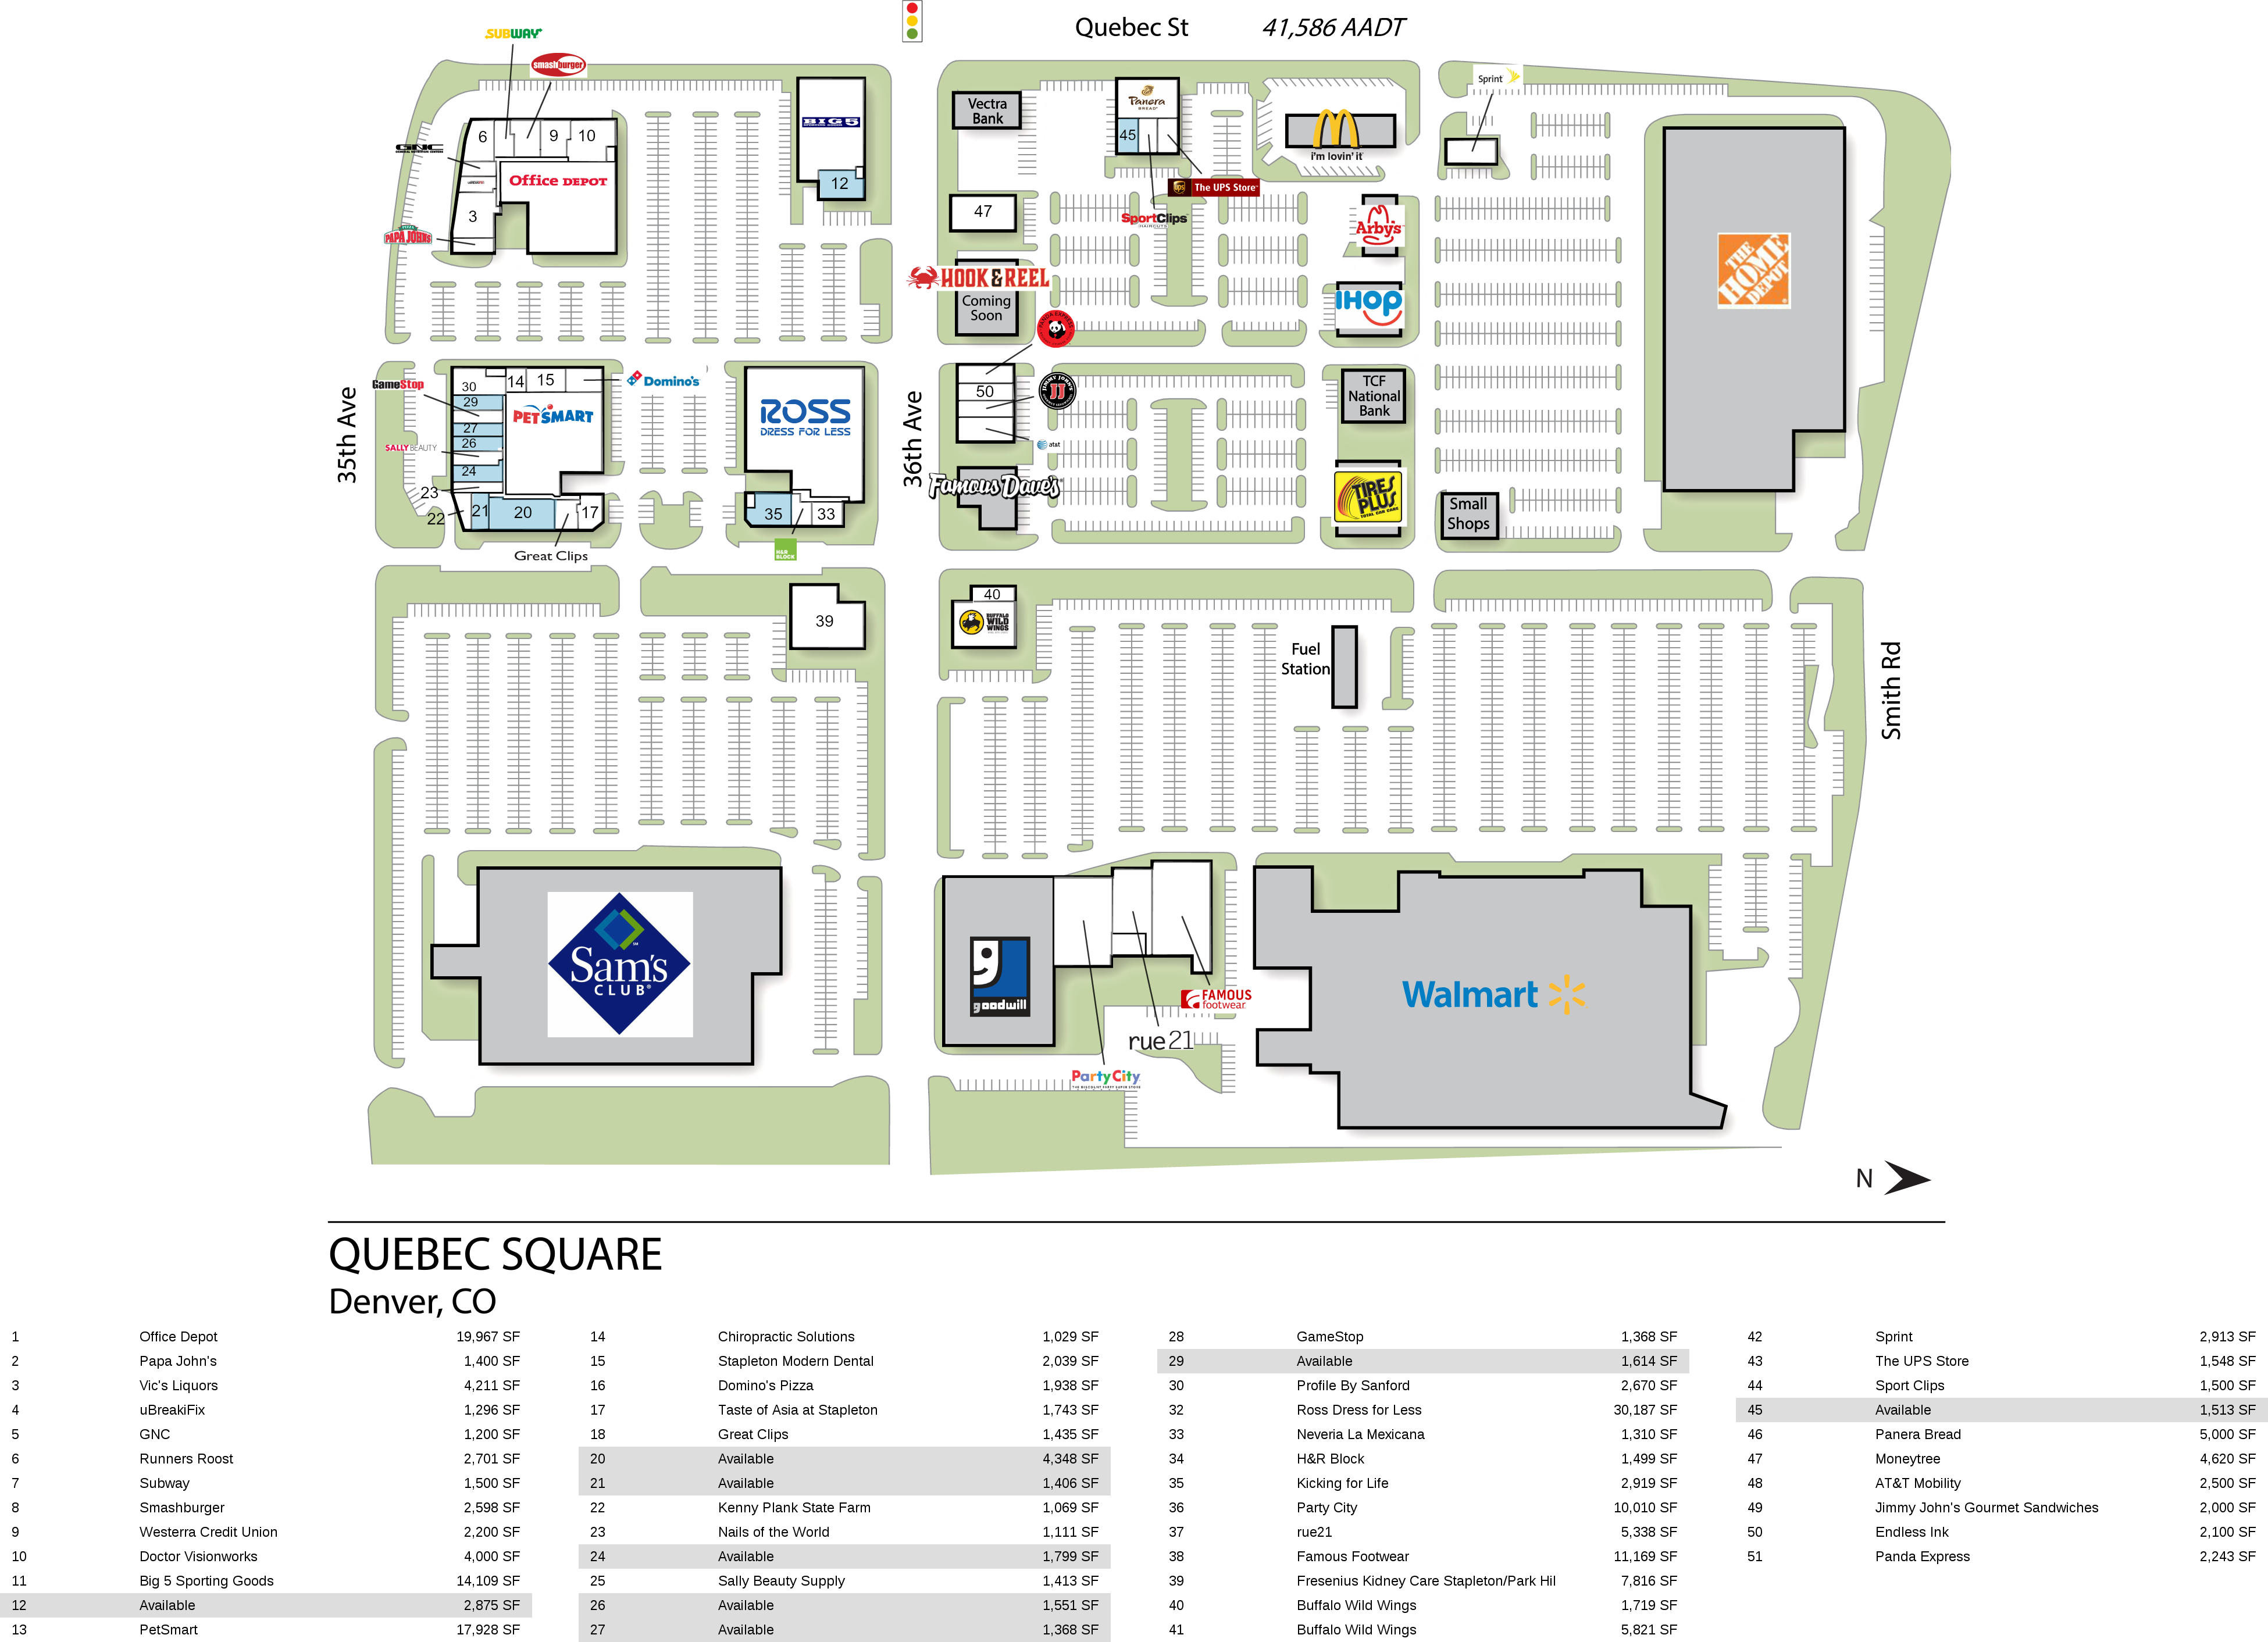 north park mall map northpark mall shopping mall in ridgeland ms  - quakerbridge mall map north sentinel island google maps